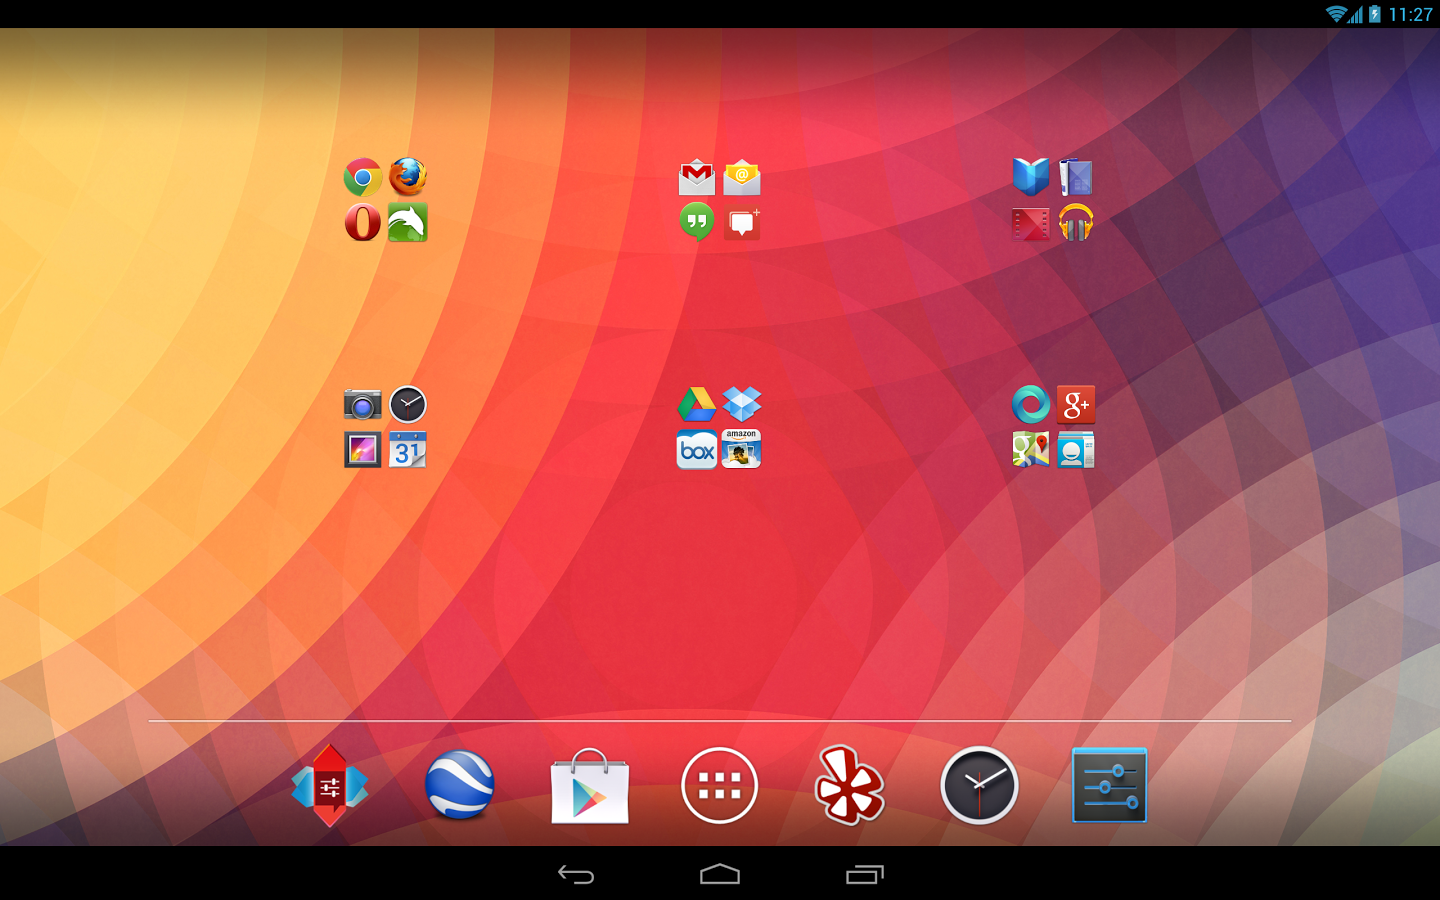 Nova Launcher beta KitKat